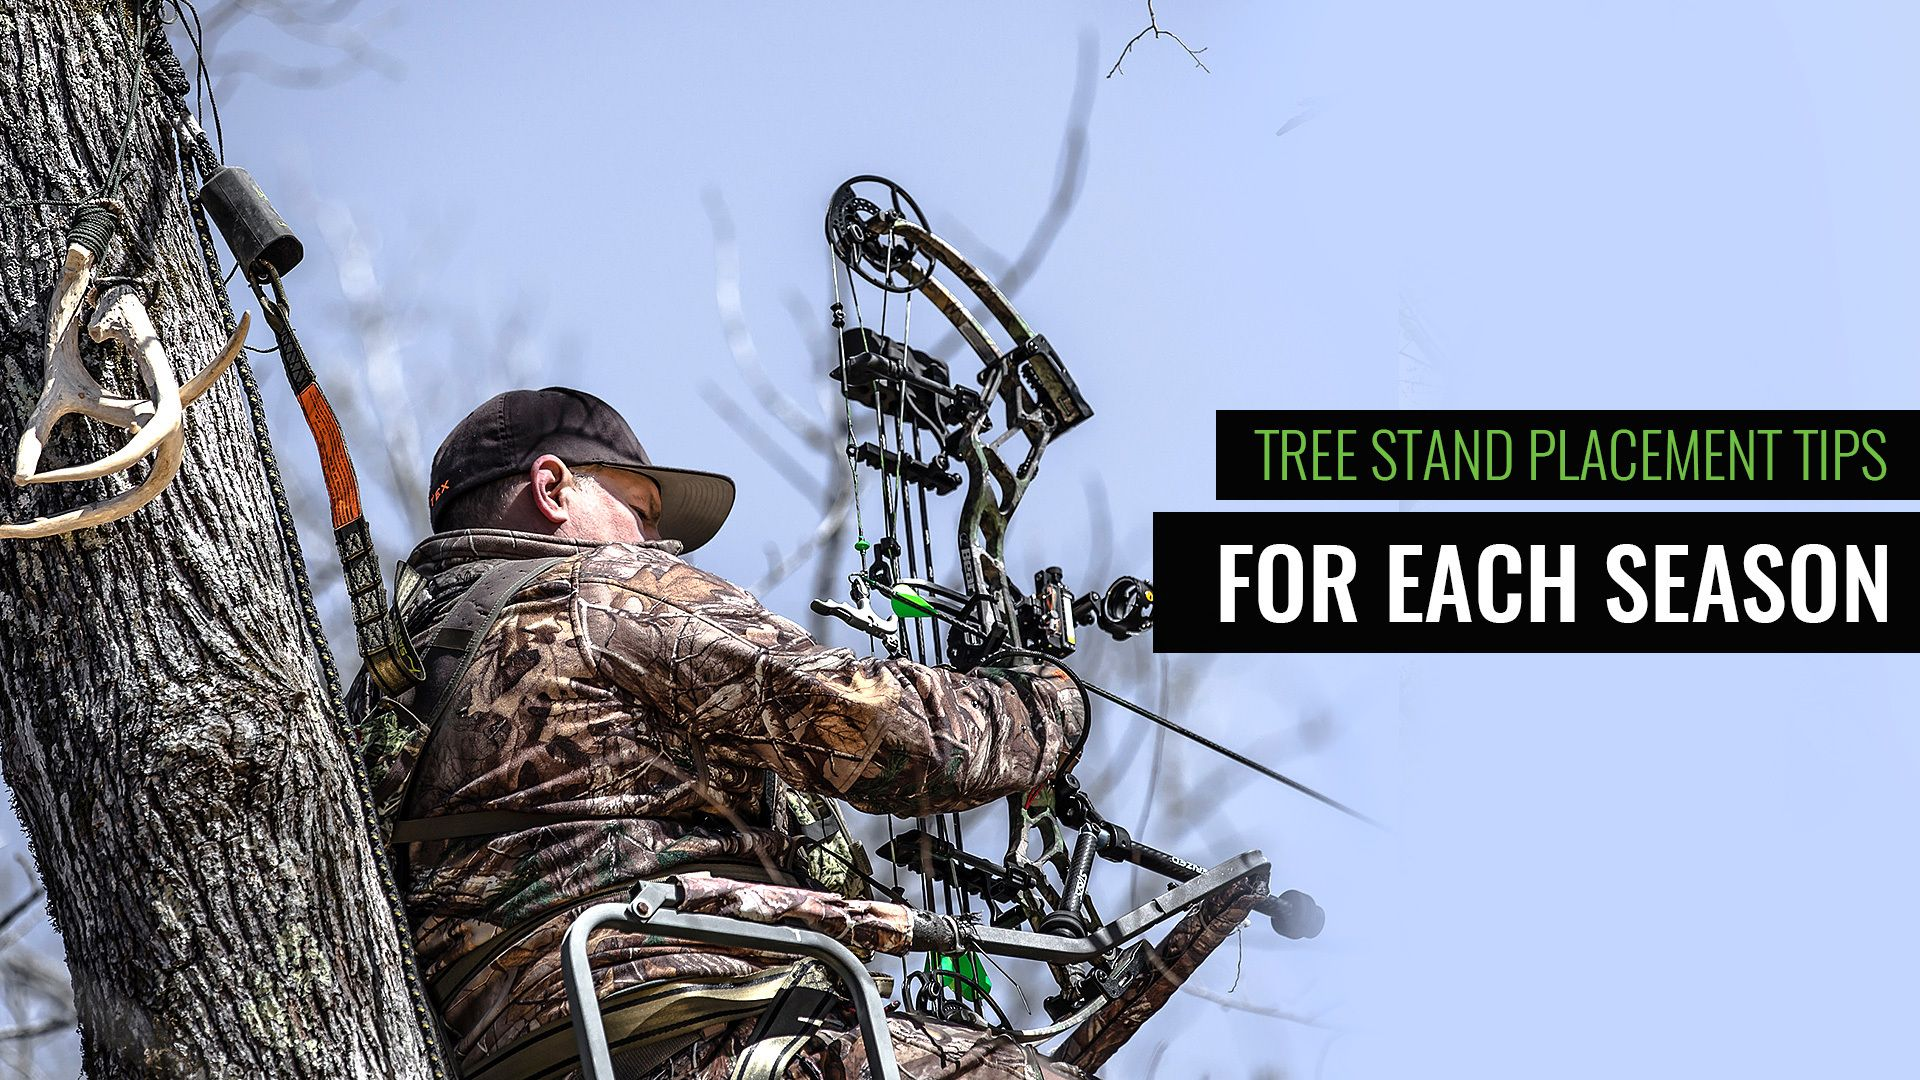 Tips For Early, Mid, & Late Season Tree Stand Placement